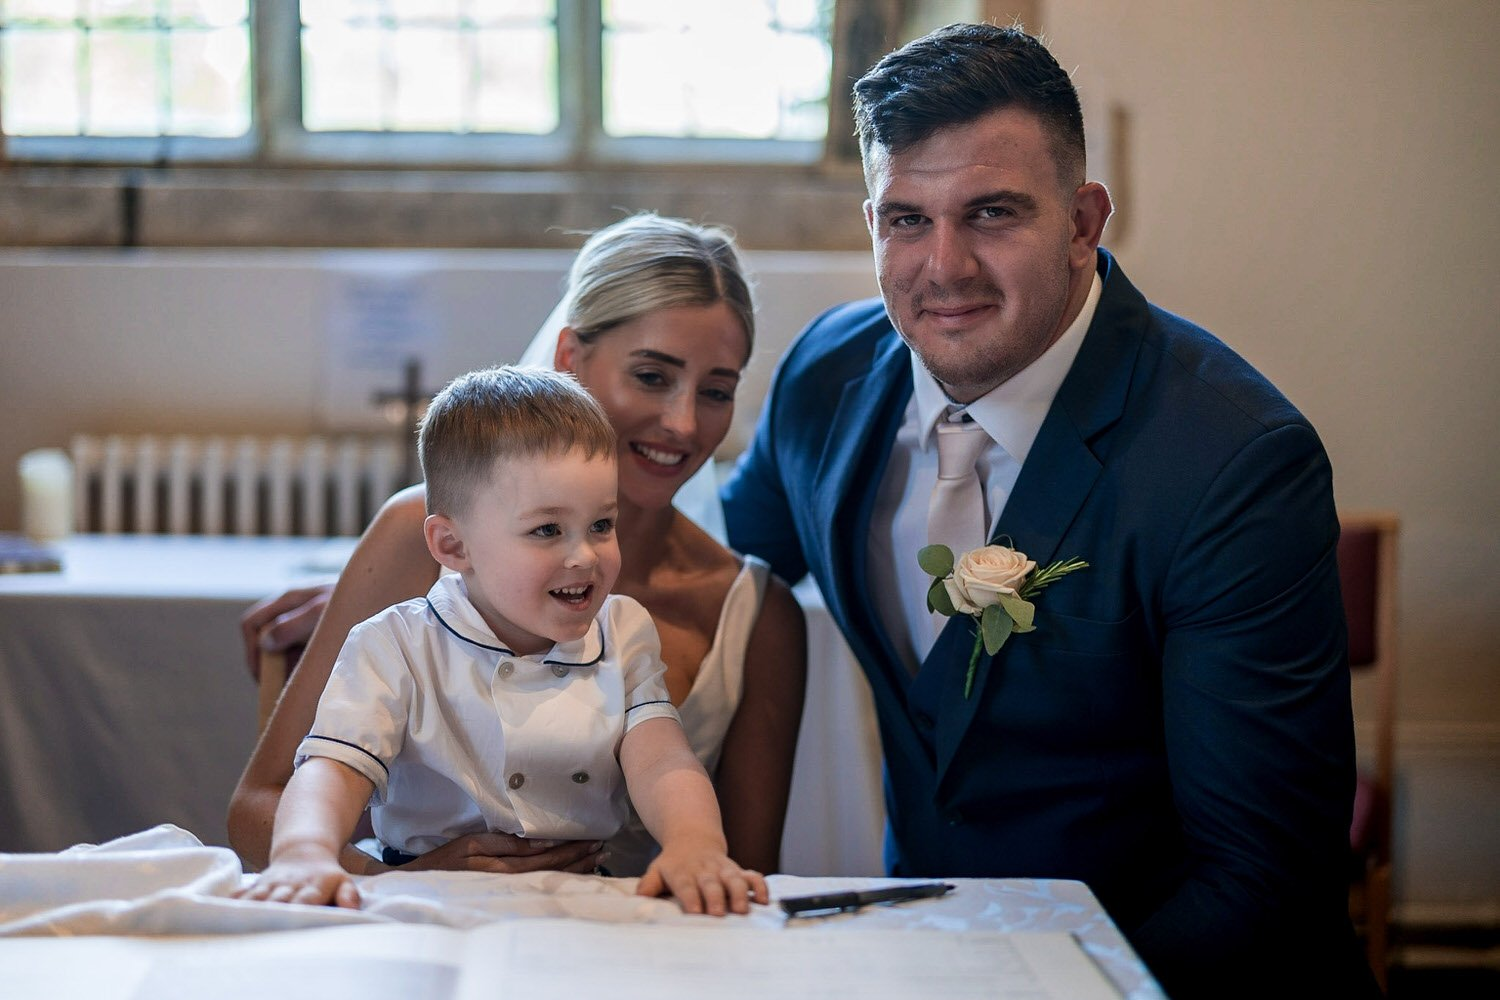 Great Bowden Parish Church Lockwood Weddings Photography groom bride and their son at the wedding signing register